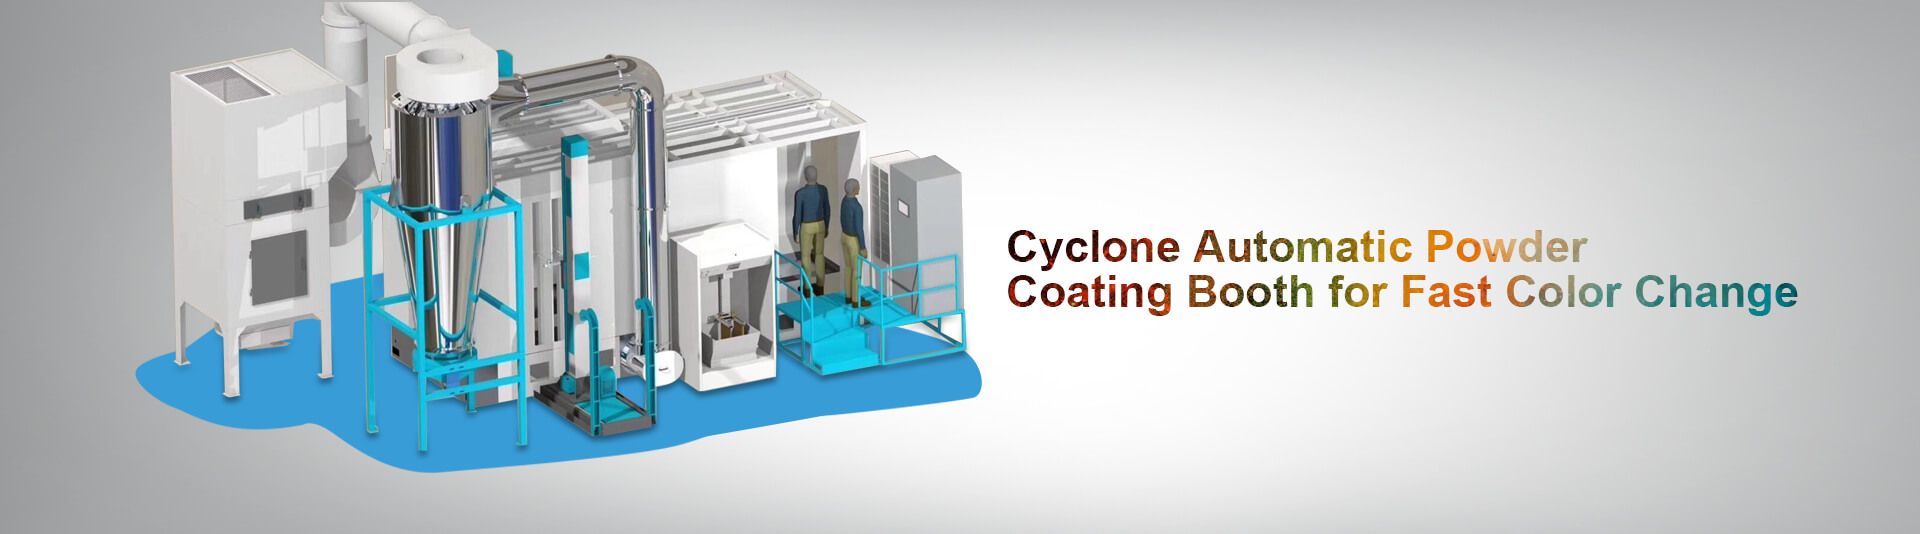 cyclone automatic powder coating booth